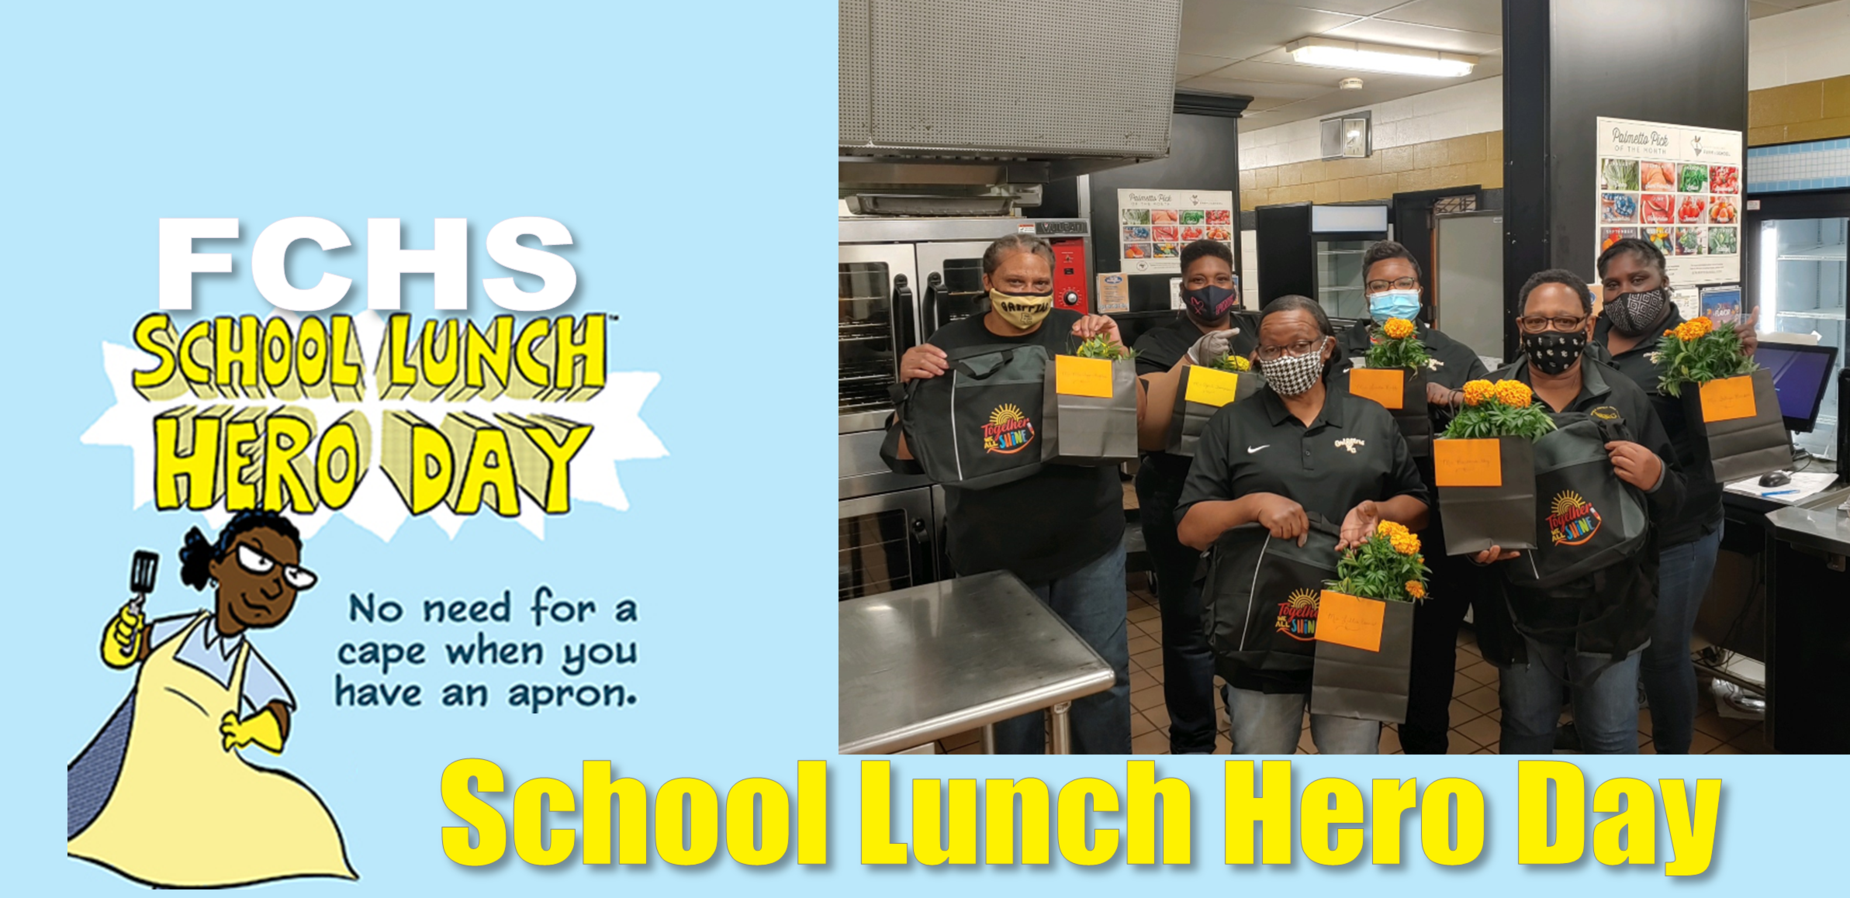 FCHS SCHOOL LUNCH HERO DAY; NO NEED FOR A CAPE WHEN YOU HAVE AN APRON.